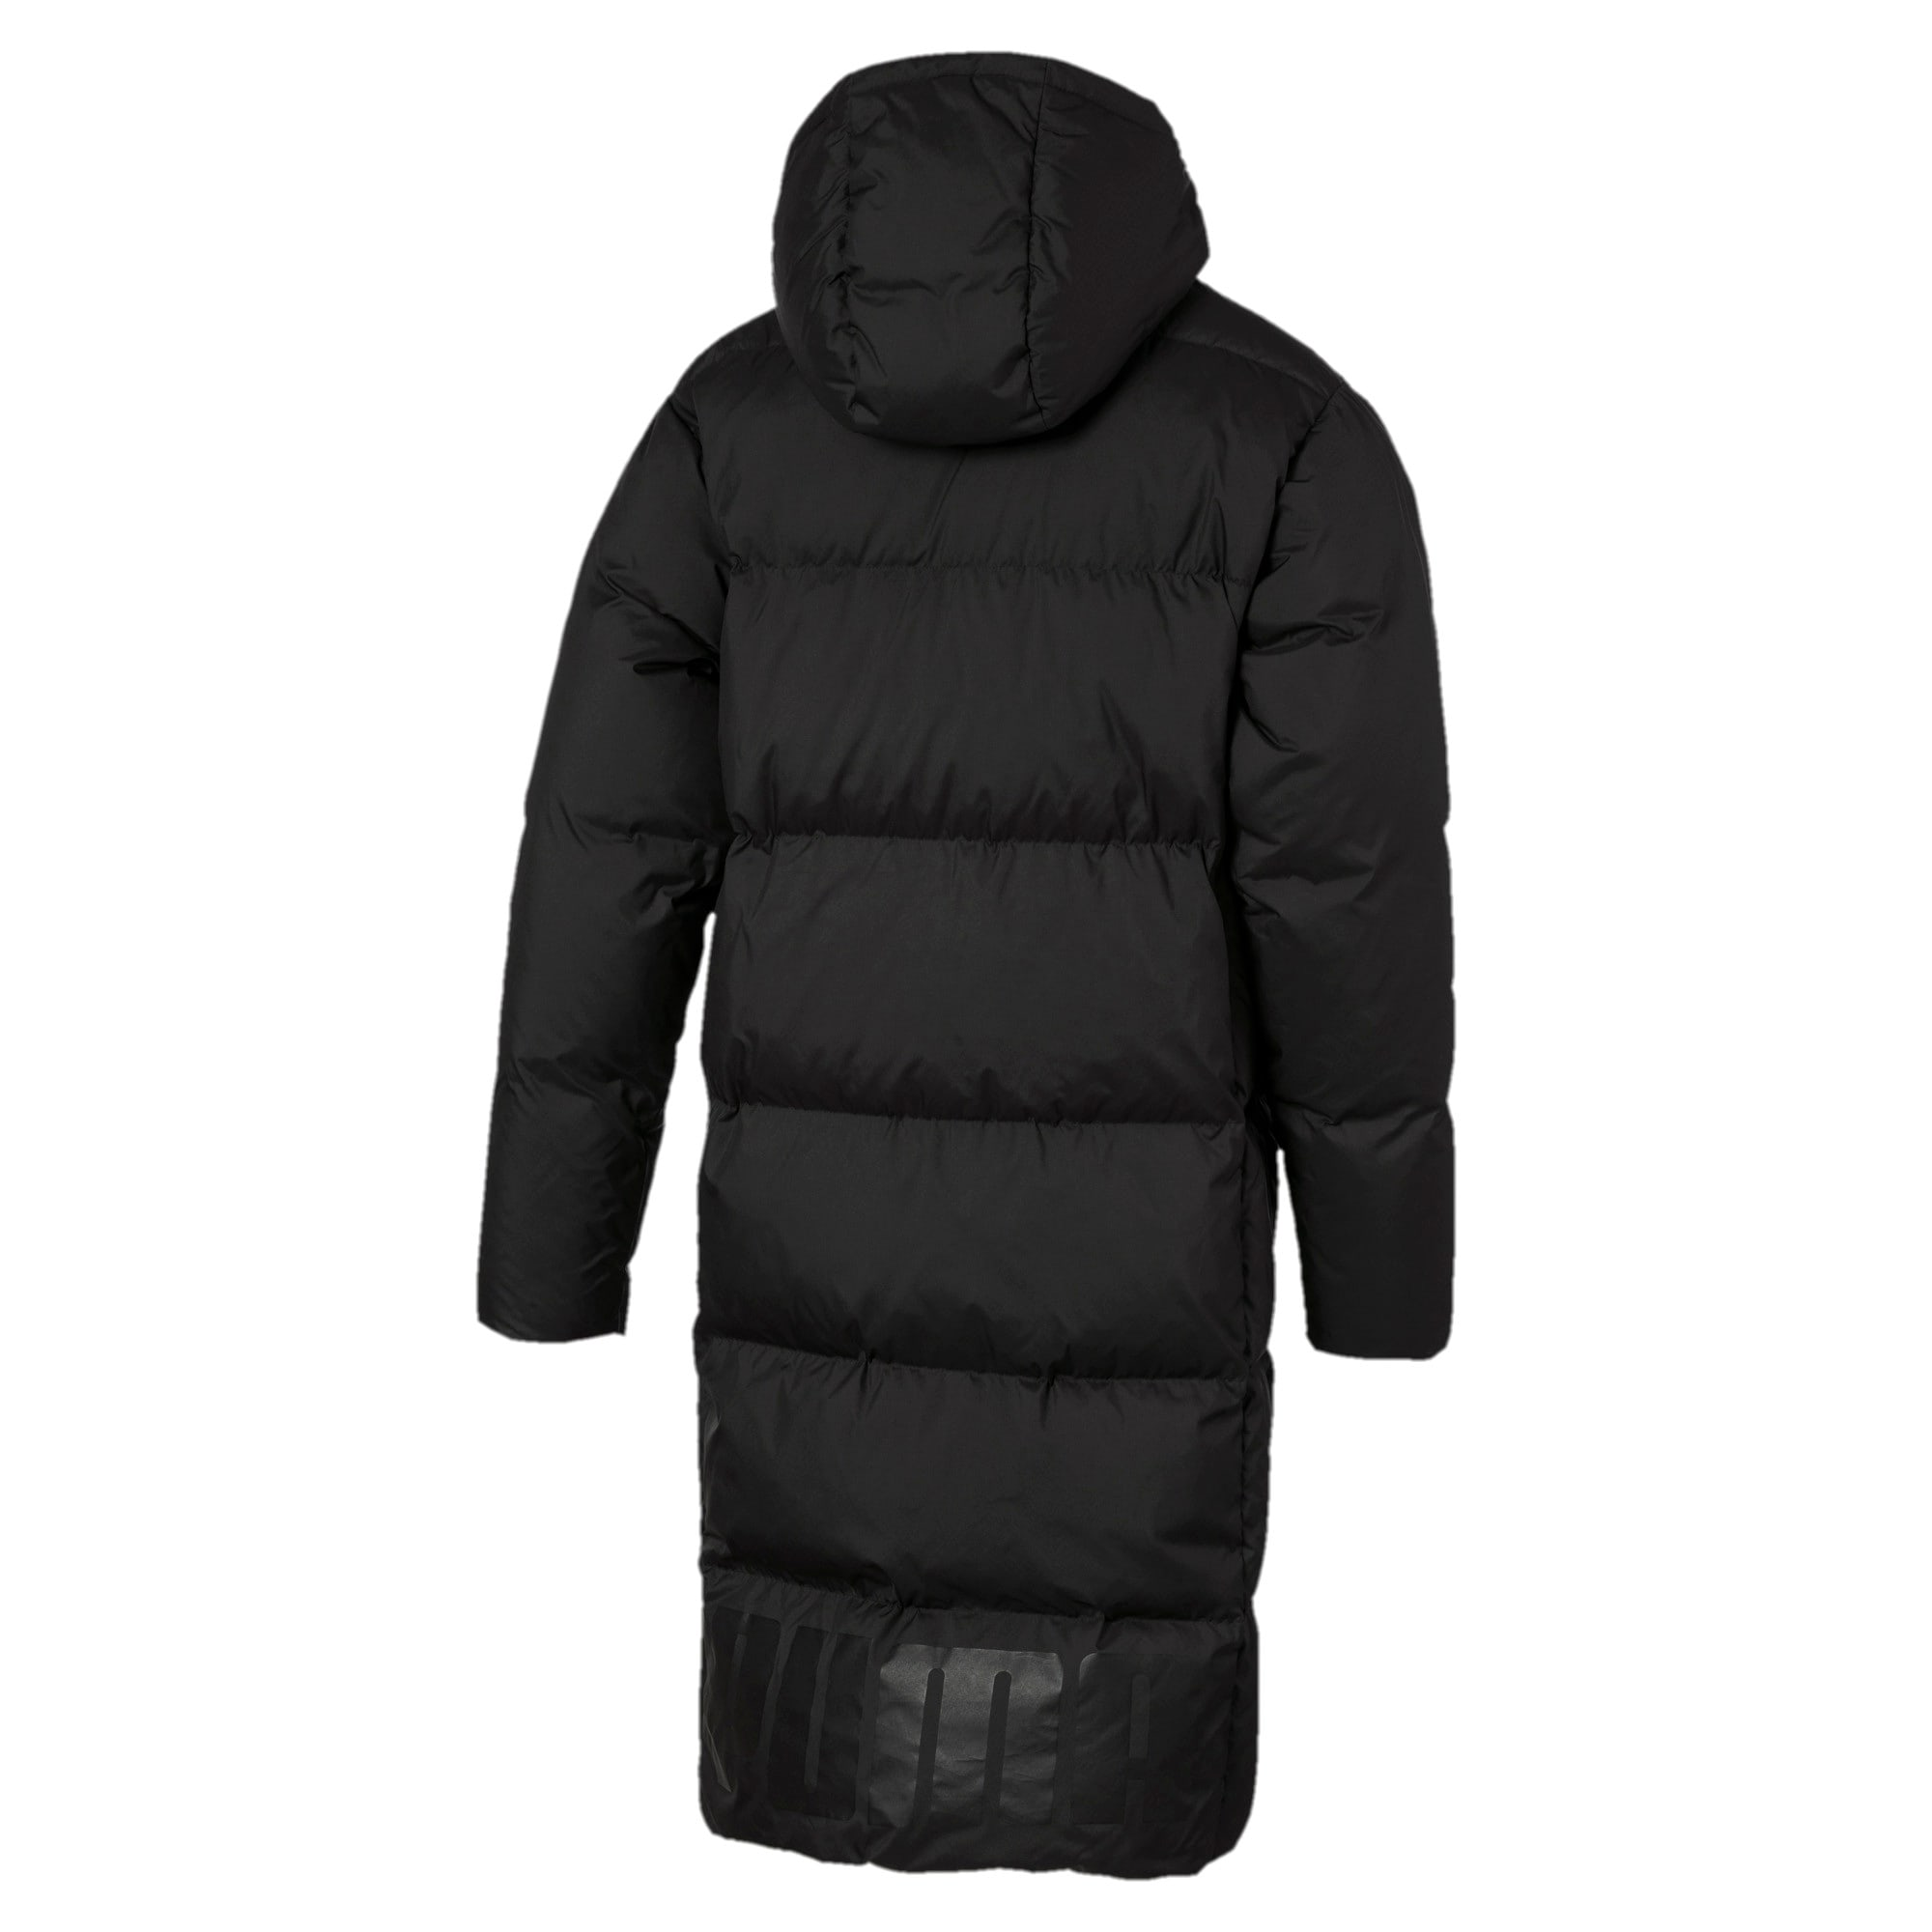 Anteprima 5 di Long Oversized Men's Hooded Coat, Puma Black, medio